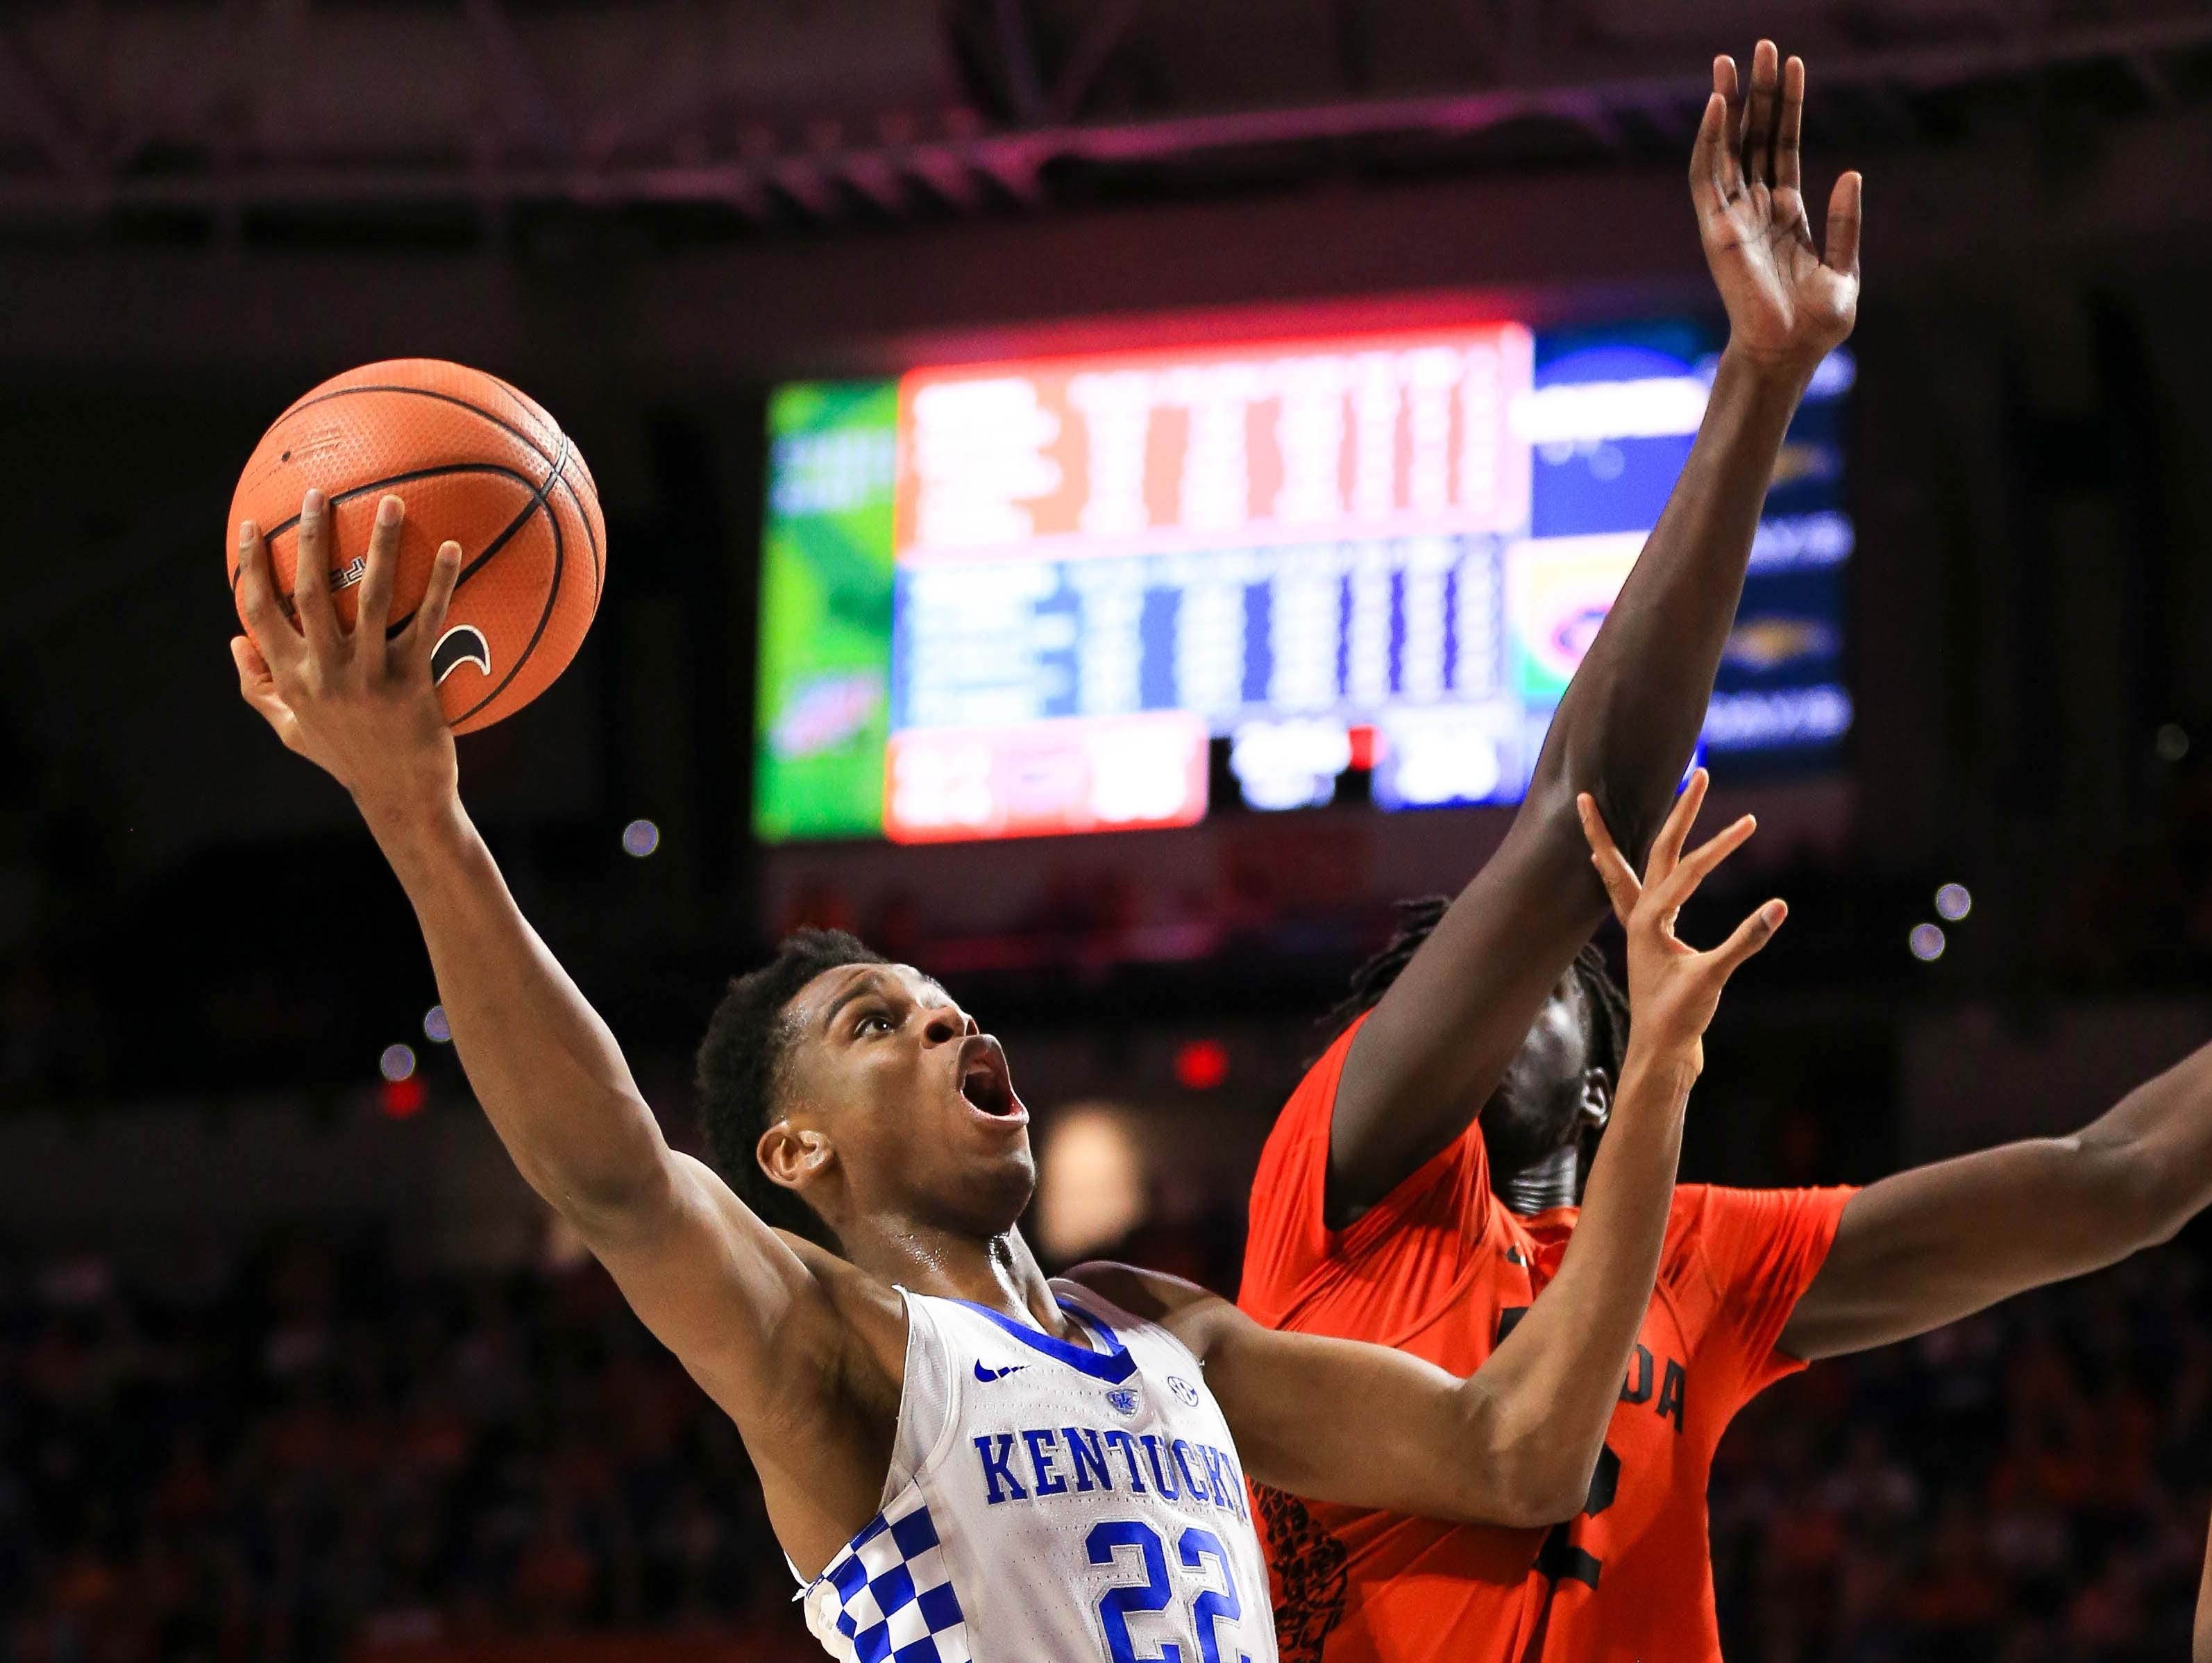 Kentucky Wildcats guard Shai Gilgeous-Alexander (22) makes a layup past Florida Gators center Gorjok Gak (12) during the first half at Exactech Arena at the Stephen C. O'Connell Center in Gainesville, Florida, on Saturday, March 3, 2018.